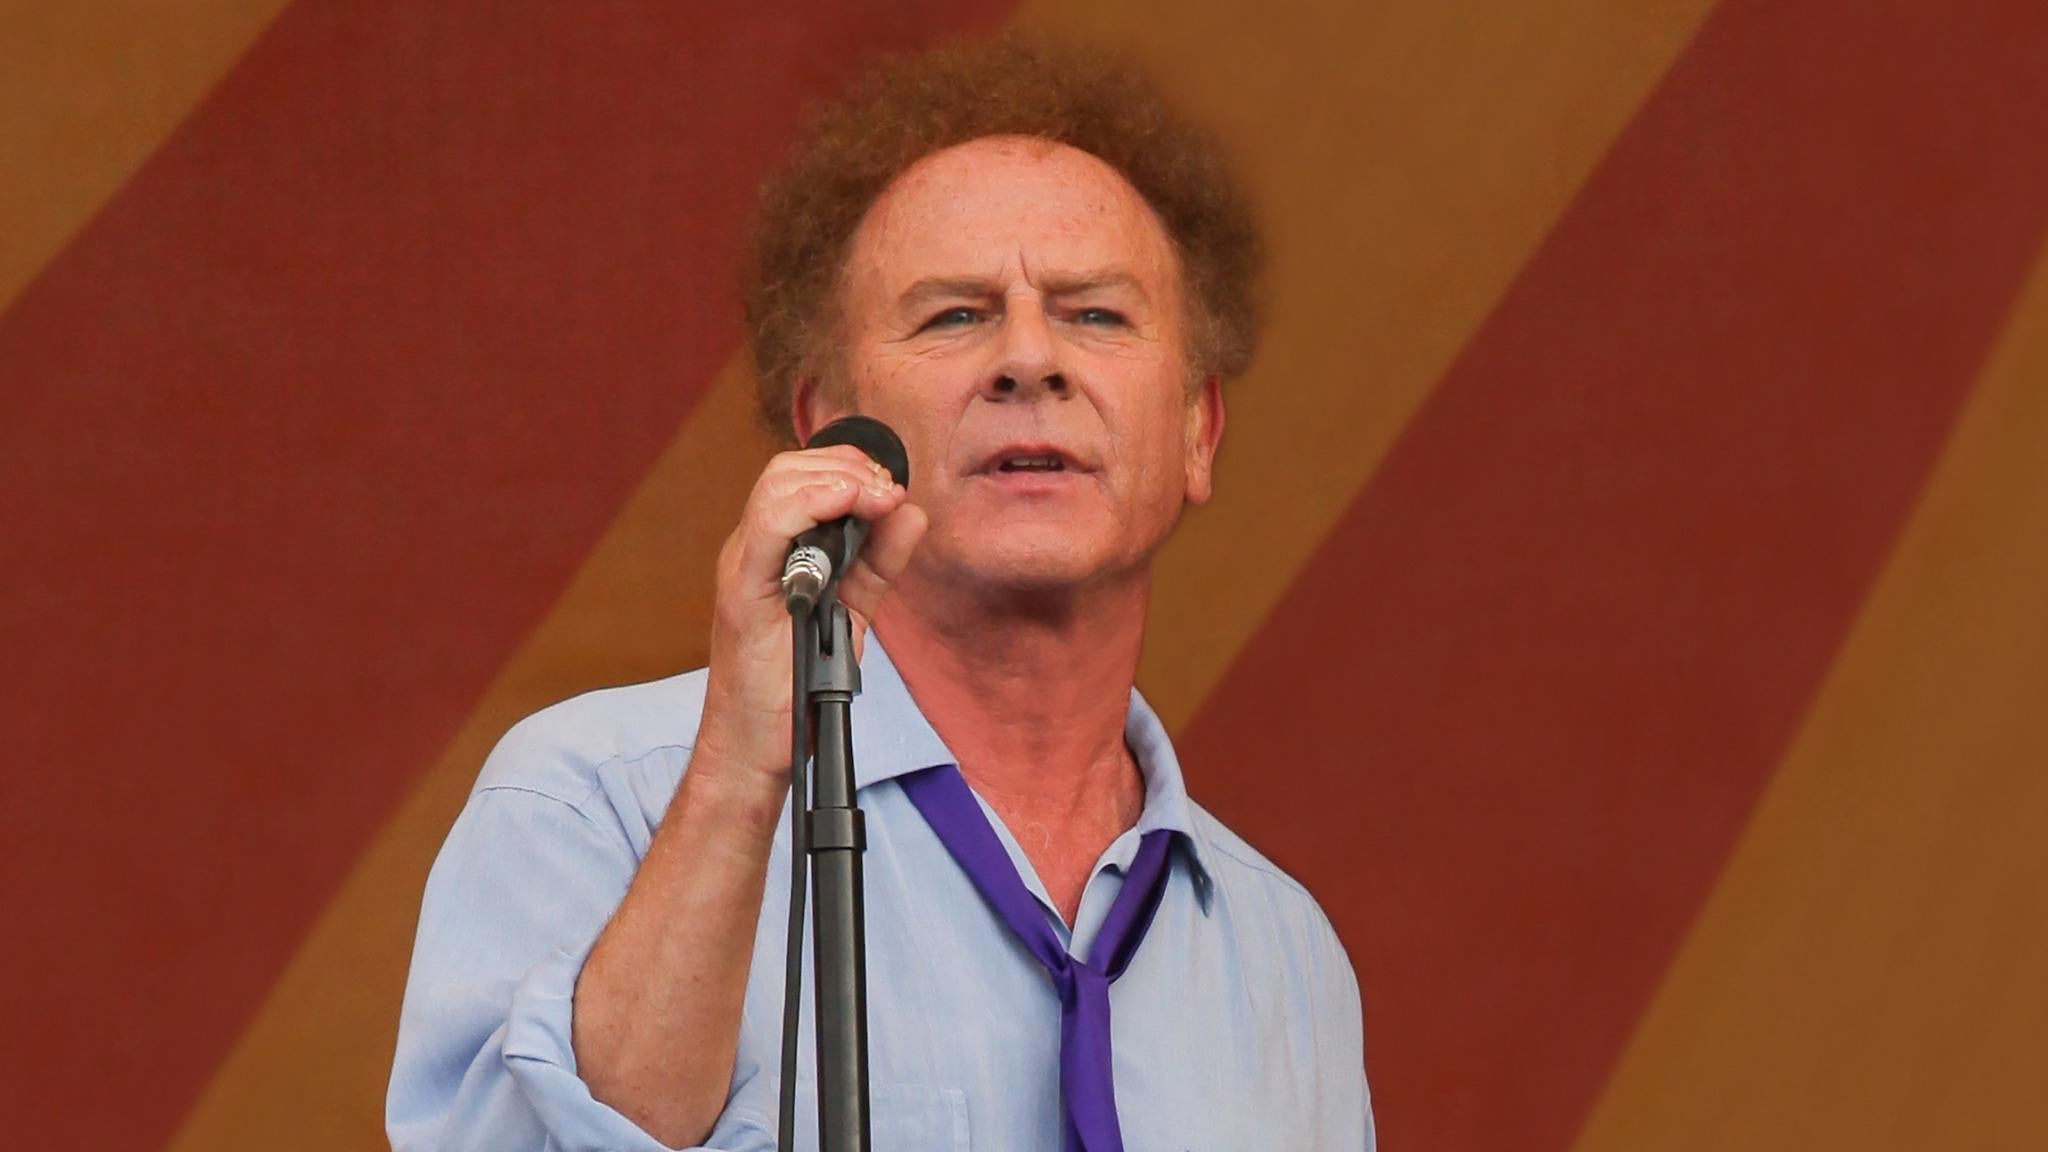 Art Garfunkel at Effingham Performance Center